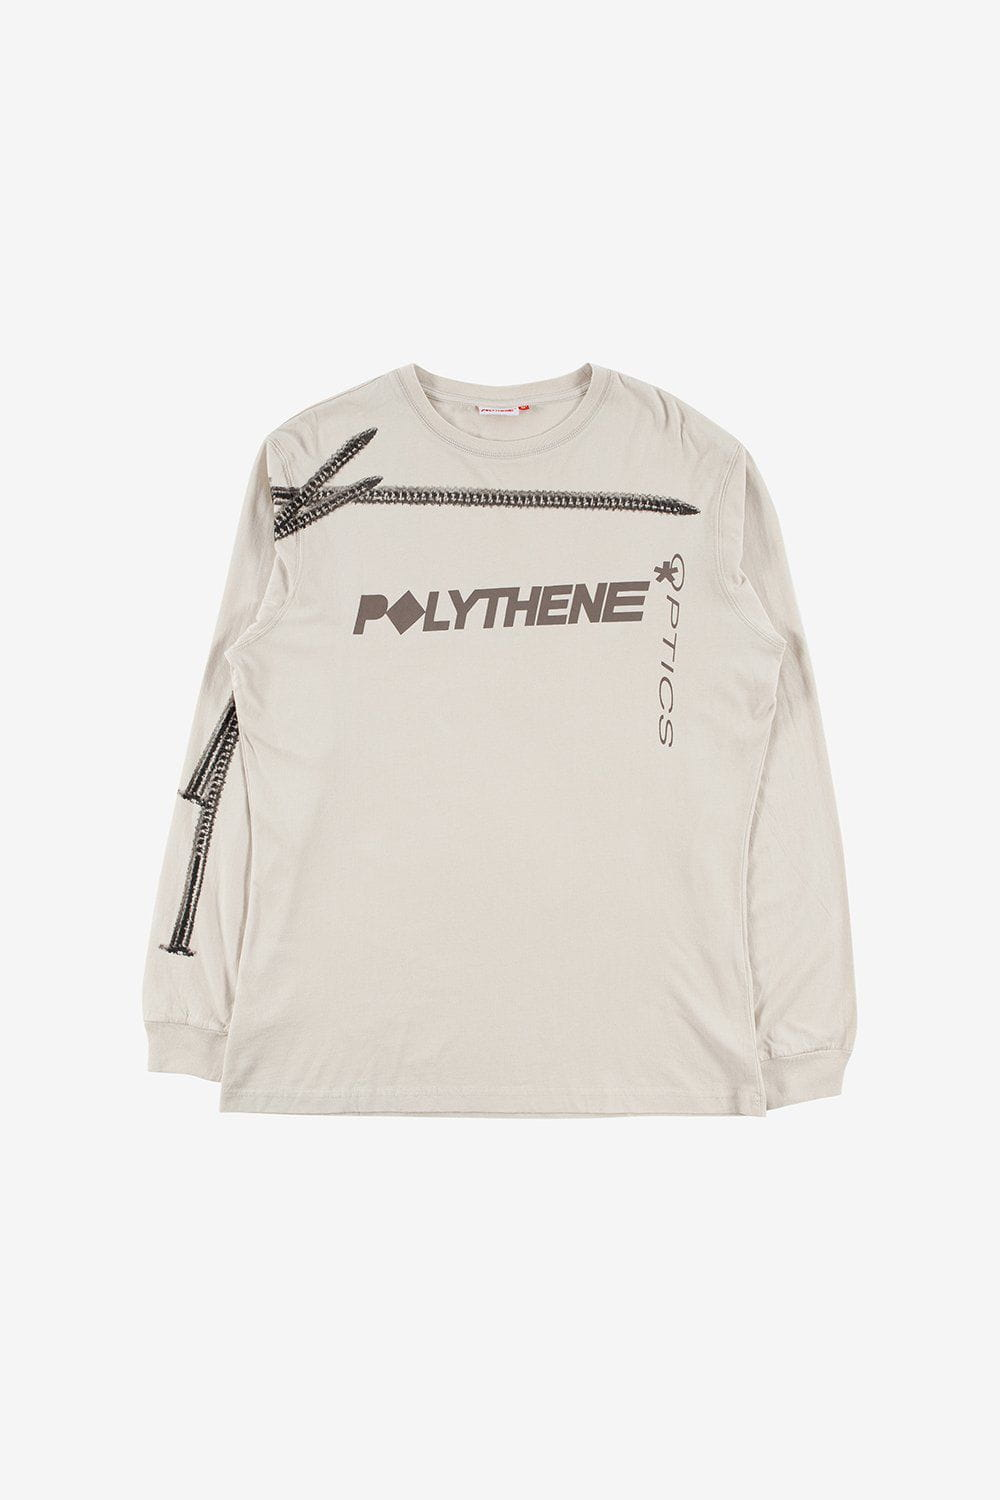 Polythene Optics Apparel Logo Long Sleeve T-Shirt Grey